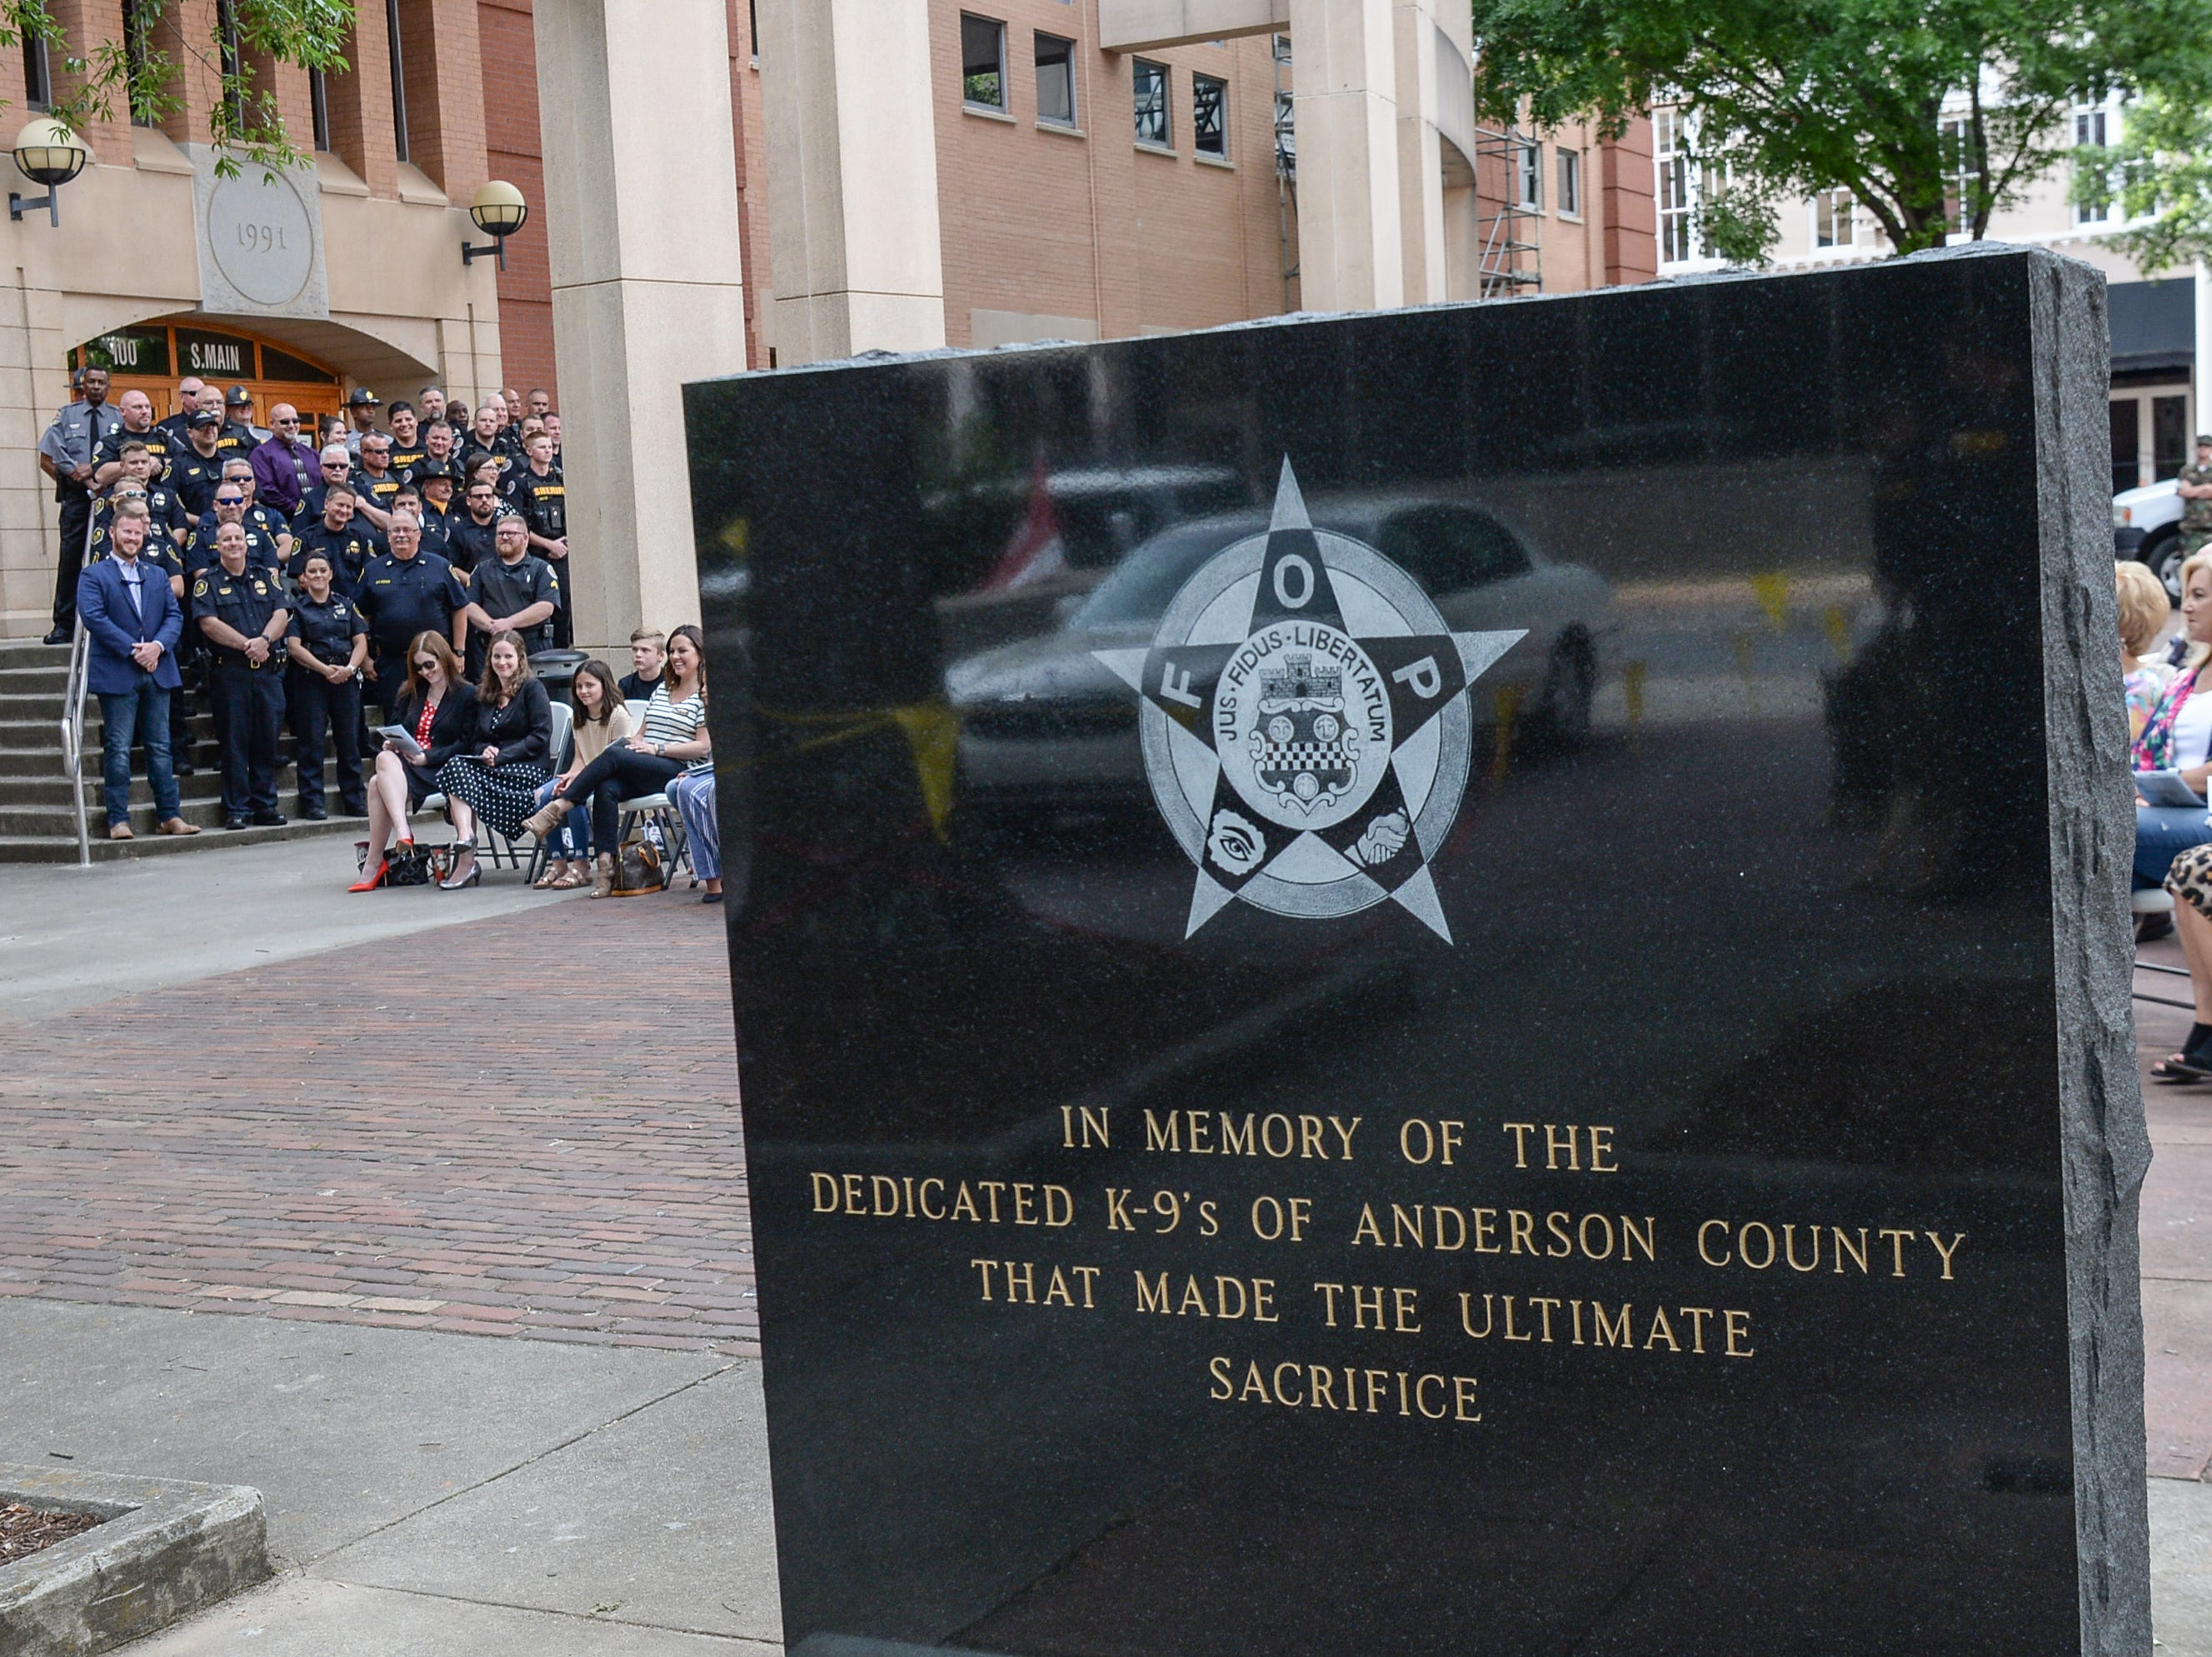 The new Fraternal Order of Police monument for fallen K-9 Duchess and Hyco, unveiled during the 2019 Peace Officer Memorial Service Wednesday May 15, 2019. People attended to help honor the lives of officers lost in the line of duty.